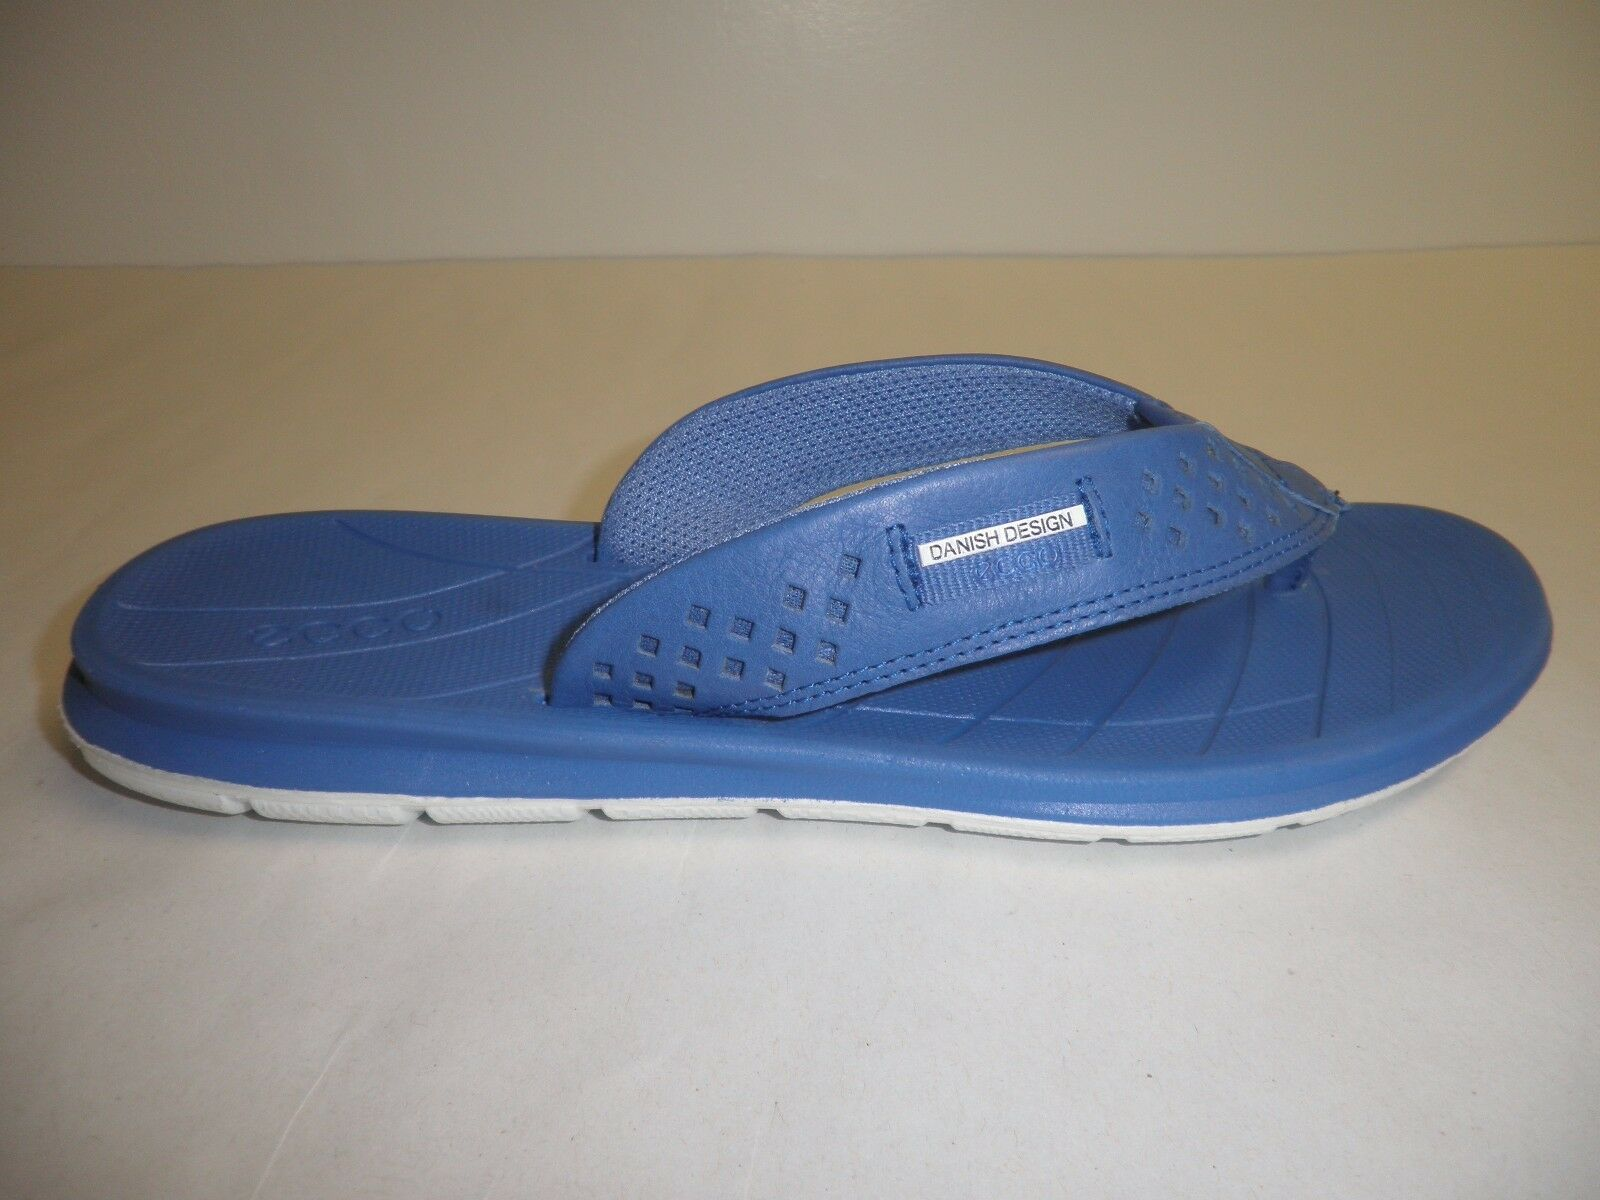 Ecco Size 5 to 5.5 INTRINSIC TOFFEL bluee Leather Thong Sandals New Womens shoes